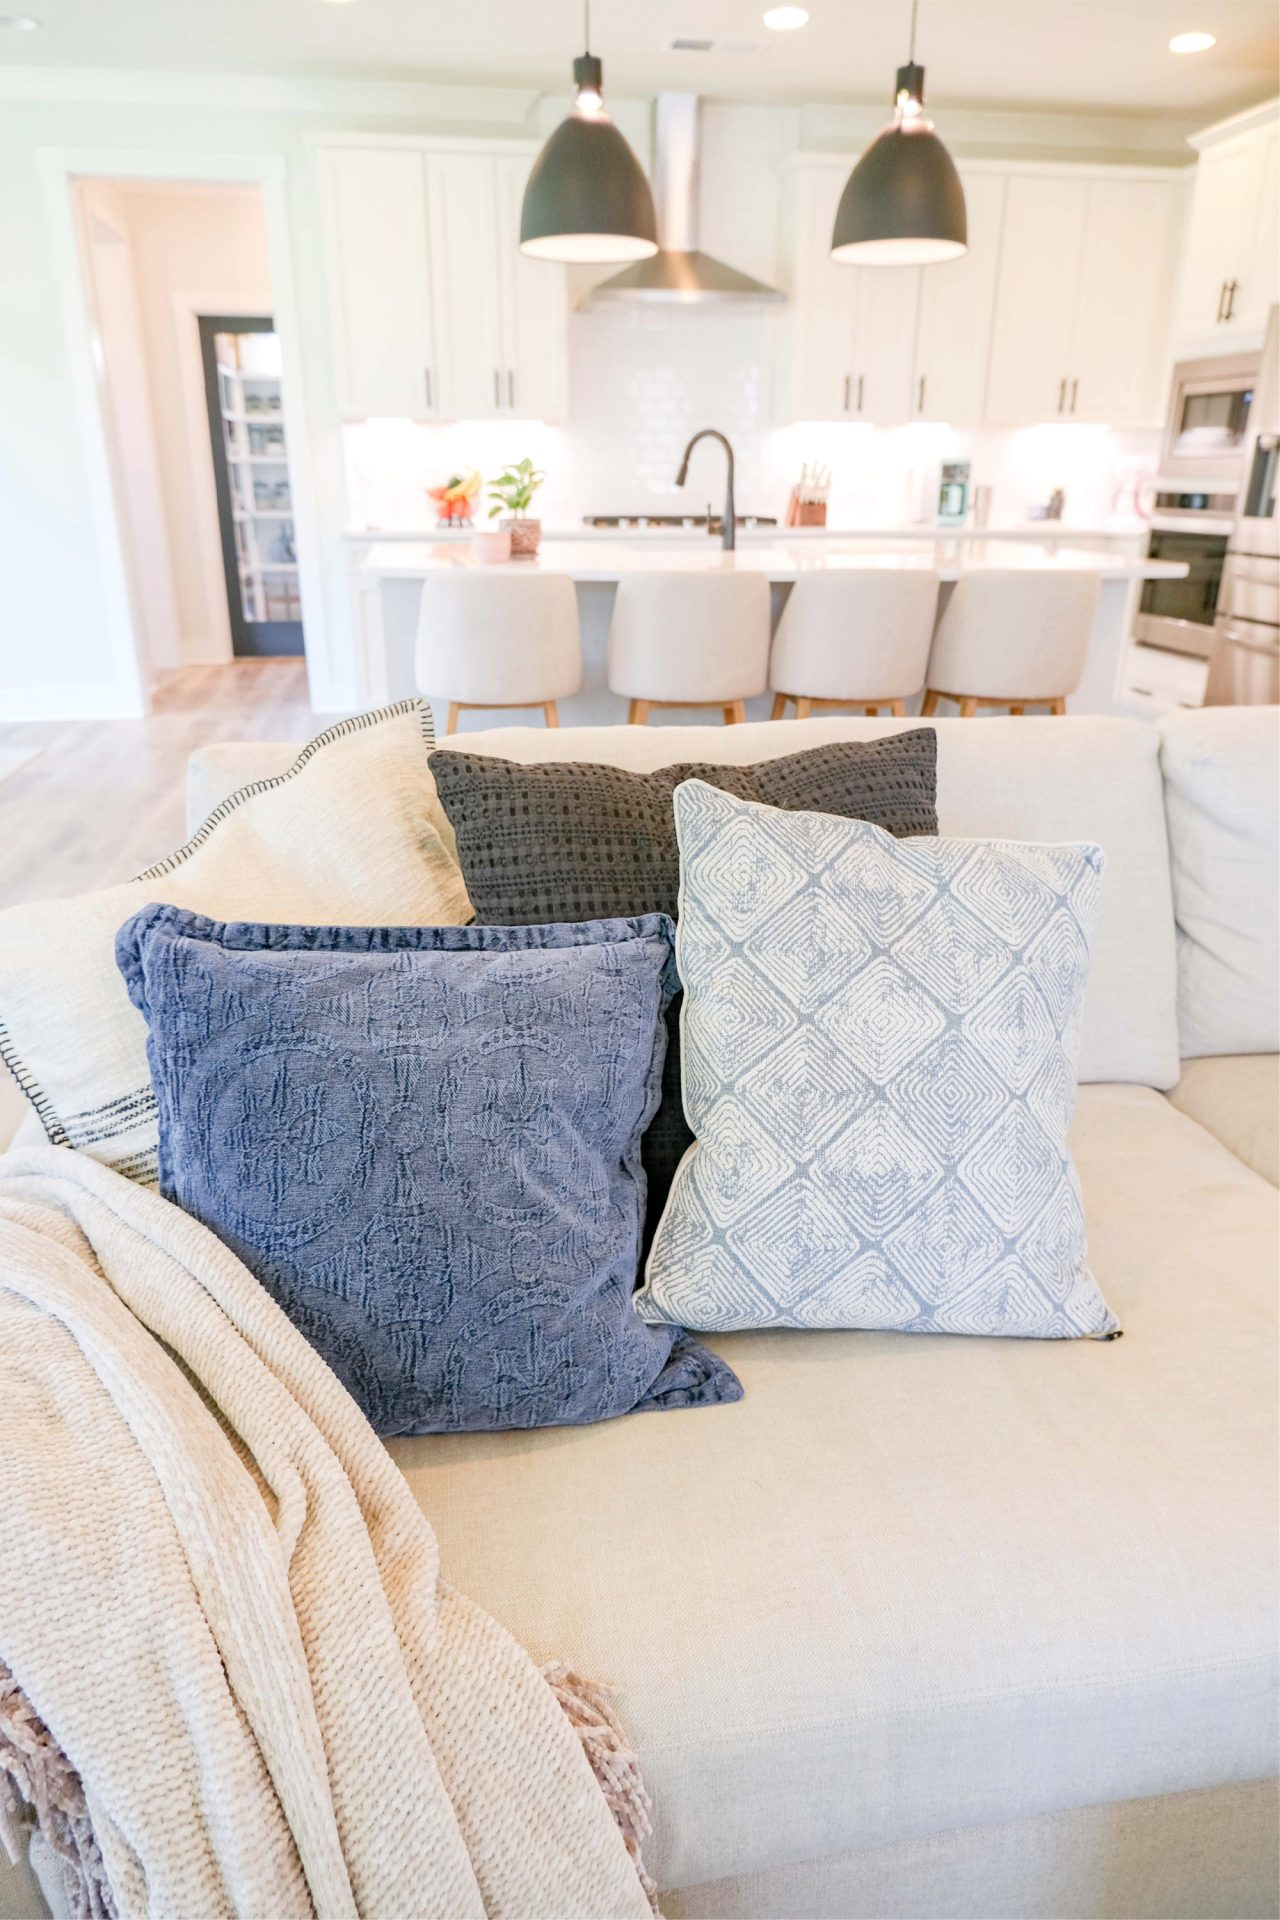 living room tour, target throw pillows, blue, black, arhaus, Remington sofas, my home, fielding homes, aura, plank cottage, white, board and button, home, outside, interior, fort mill, south Carolina, white kitchen, masons bend